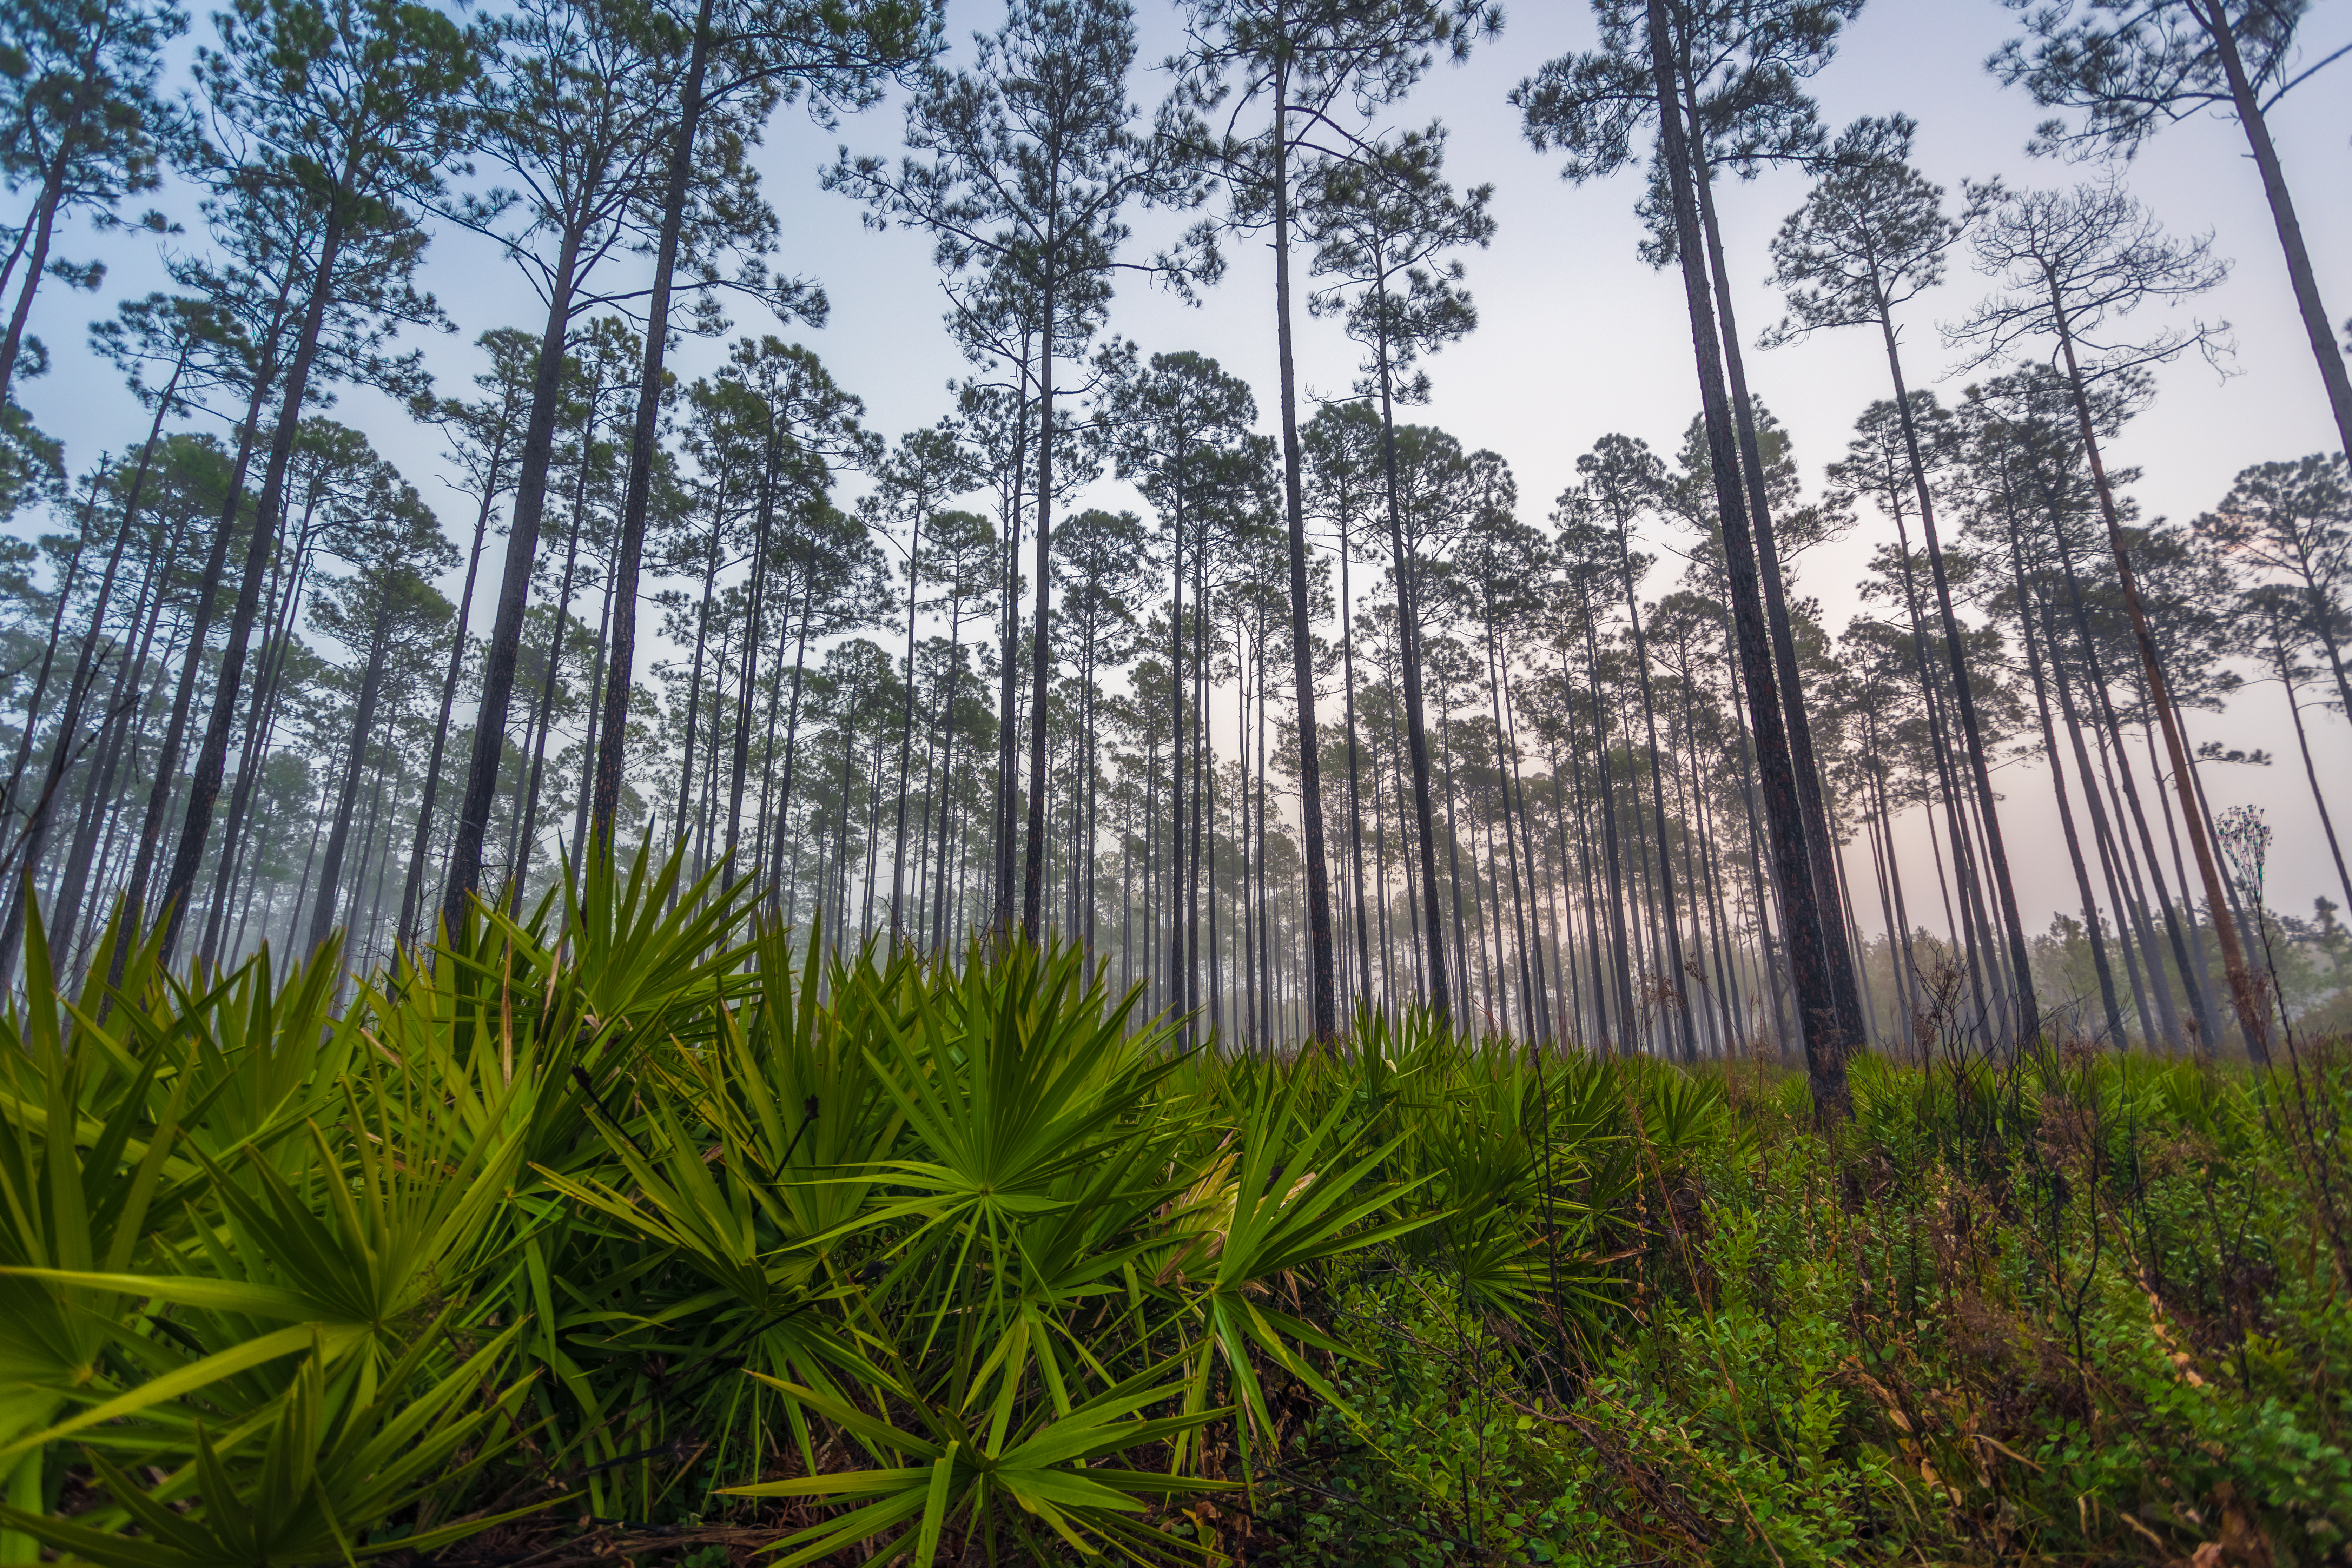 Saw palmetto Okefenokee NWR